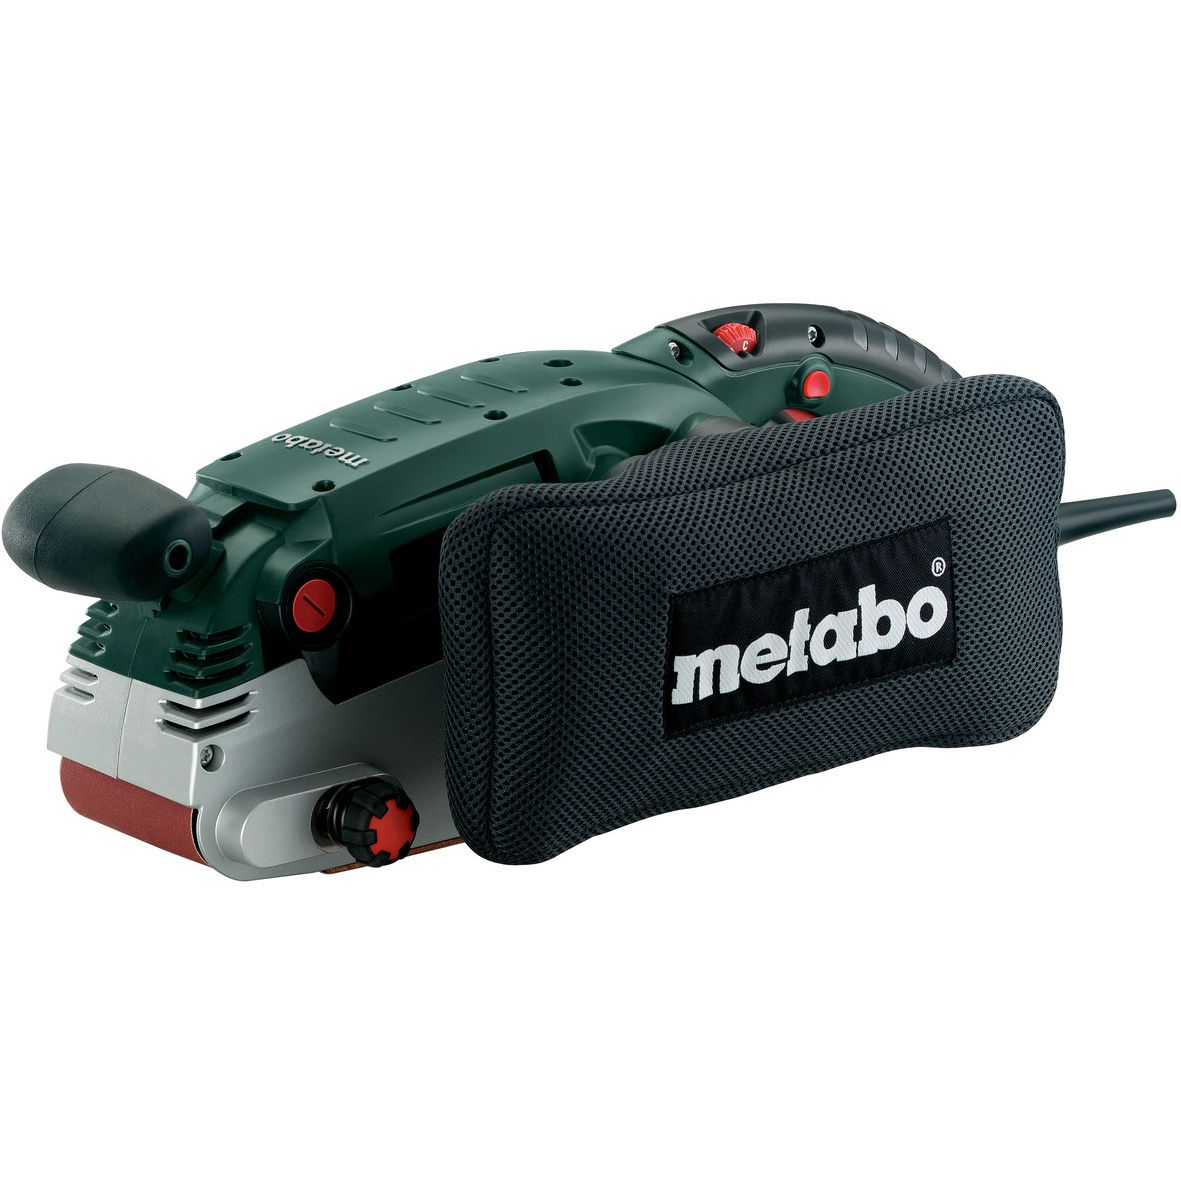 Cool Metabo Belt Sander Bae 75 Alberton Hardware Online Store Gmtry Best Dining Table And Chair Ideas Images Gmtryco